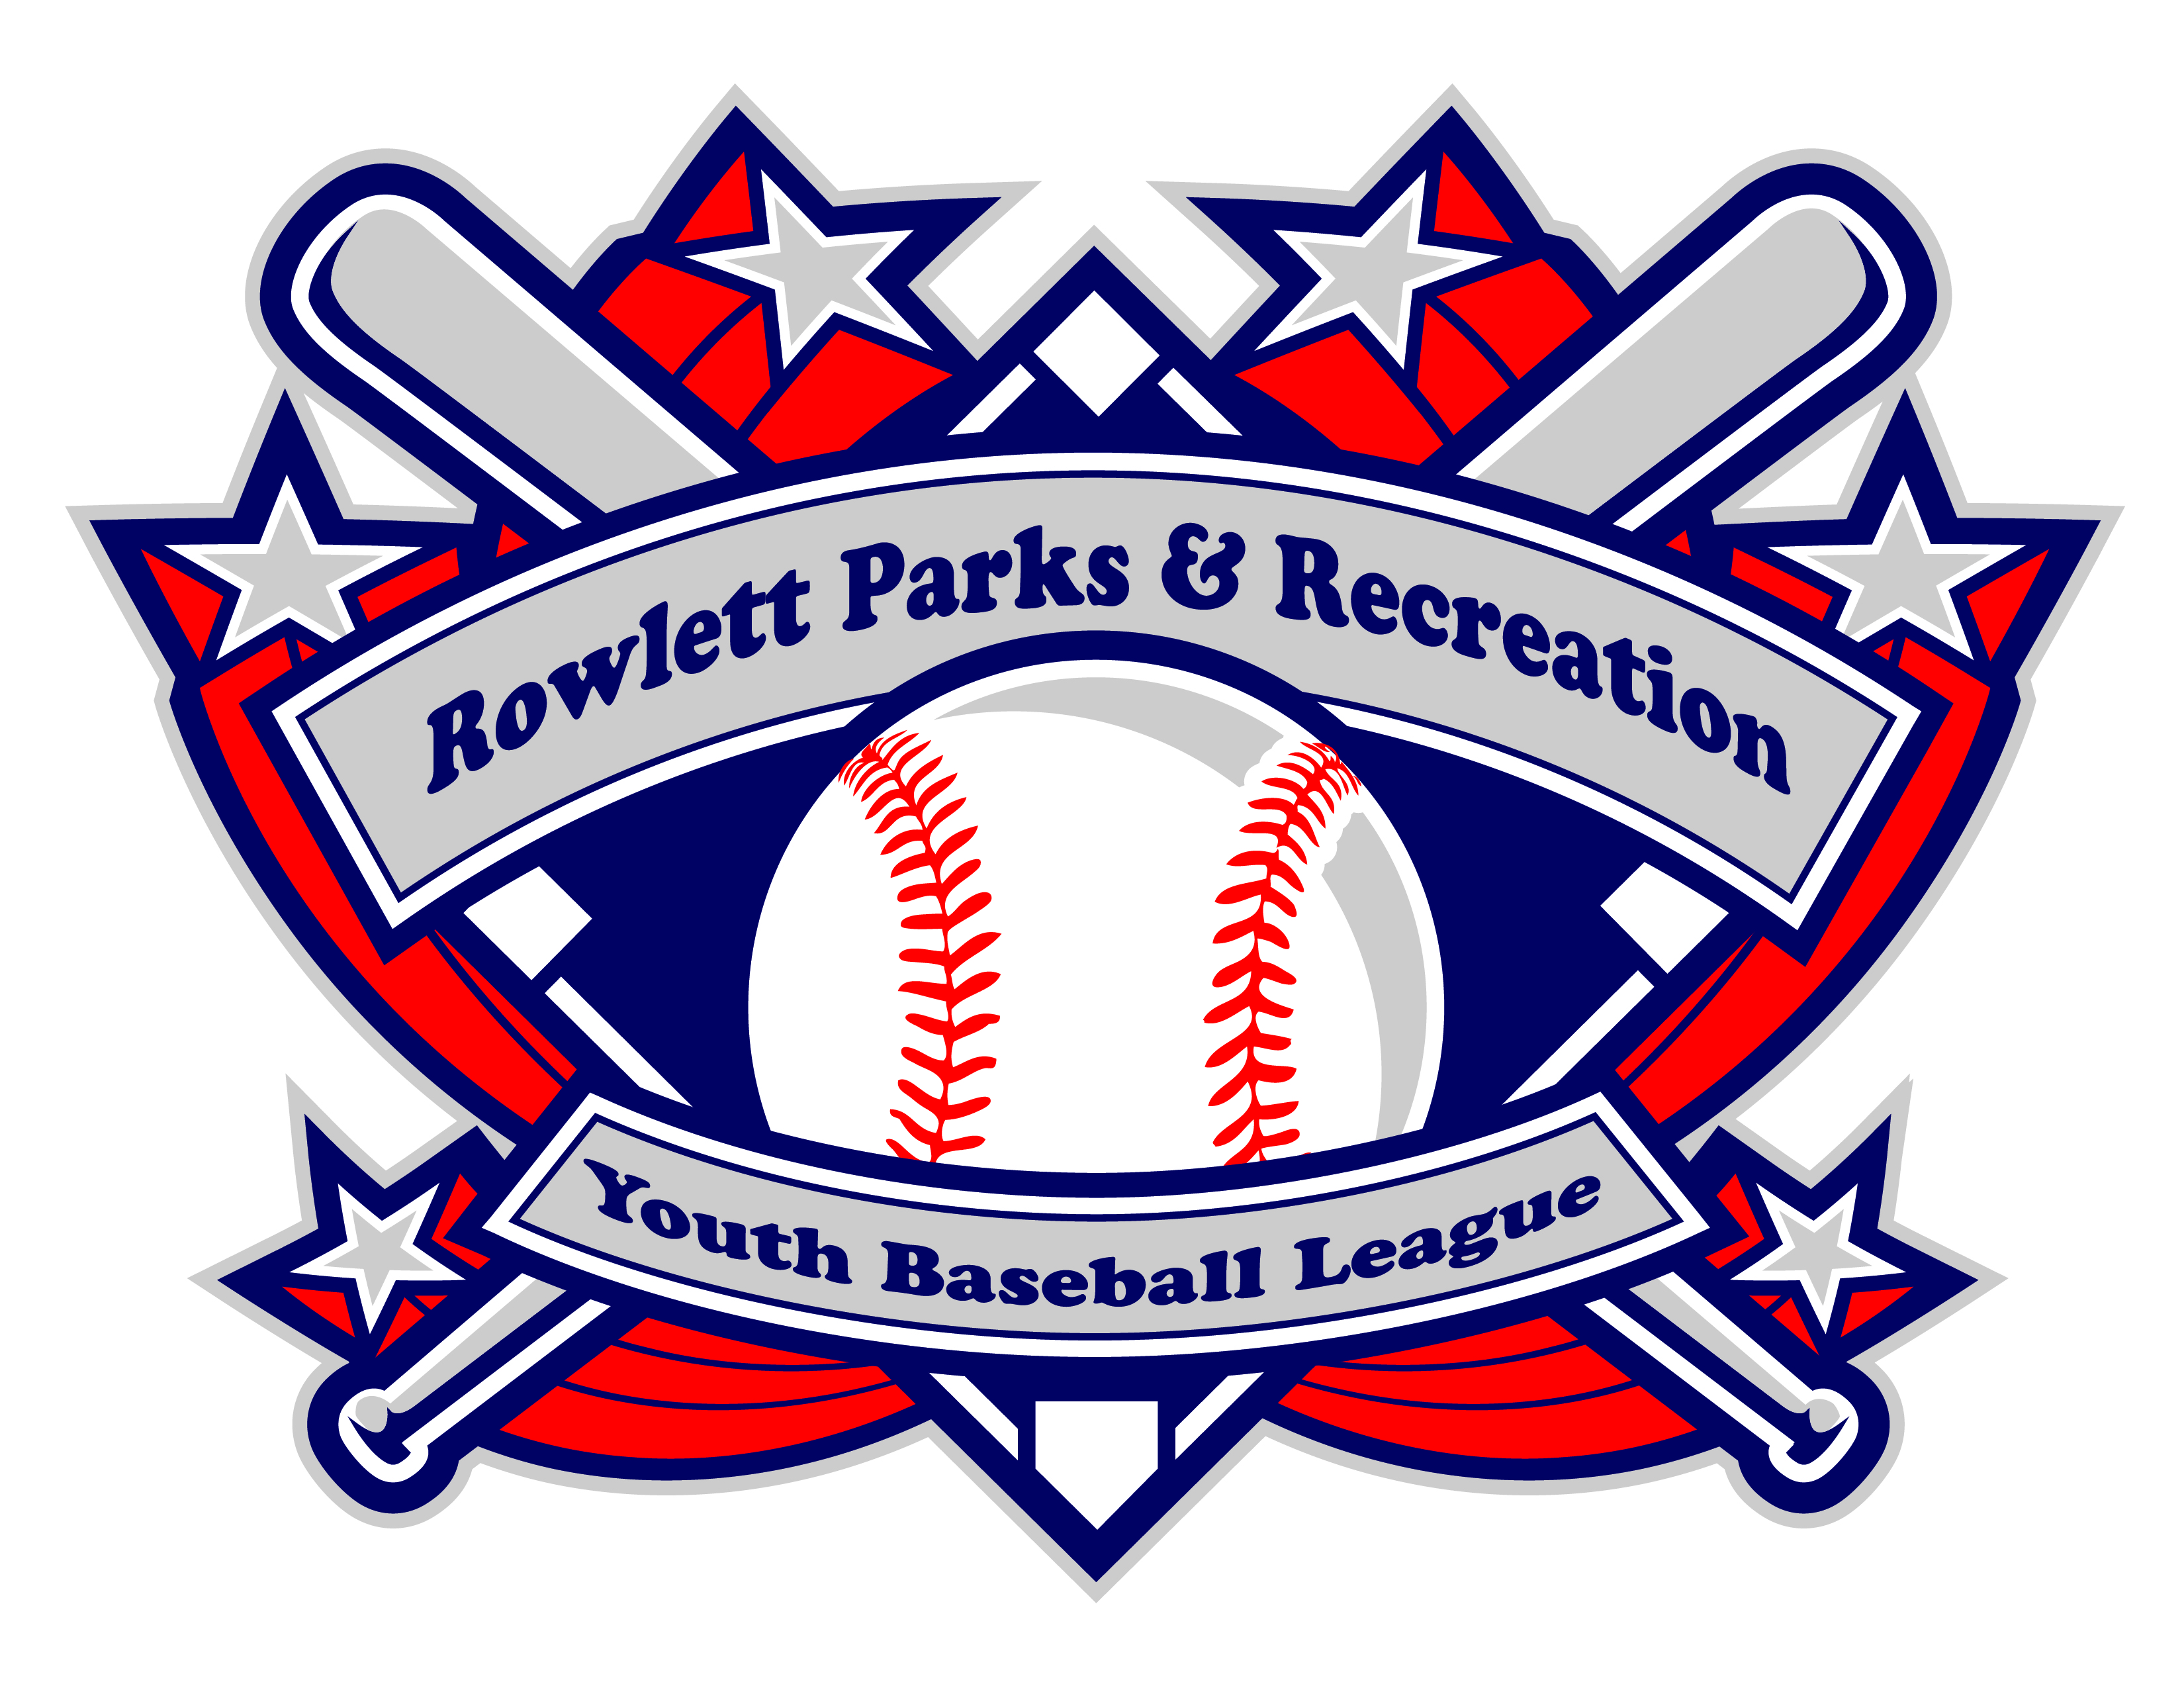 Rowlett Parks and Recreation Youth Baseball League crest